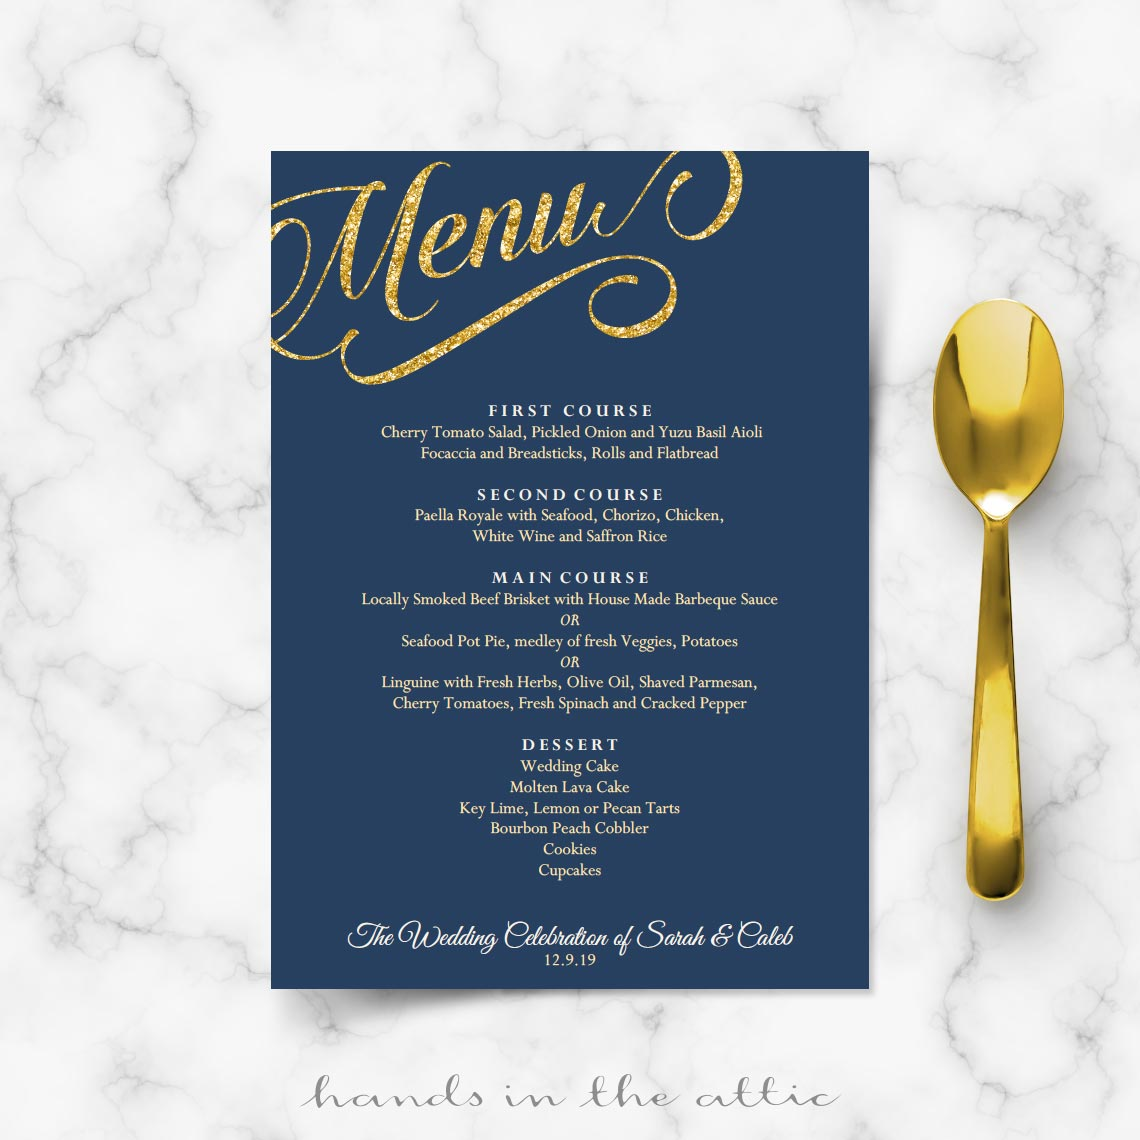 Divine G Wedding Menu Navy Blue G Bridesmaid Dresses G Wedding Menu Template Reception Menu Cards Navy Blue G Suit Navy Blue Navy Blue inspiration Navy Blue And Gold